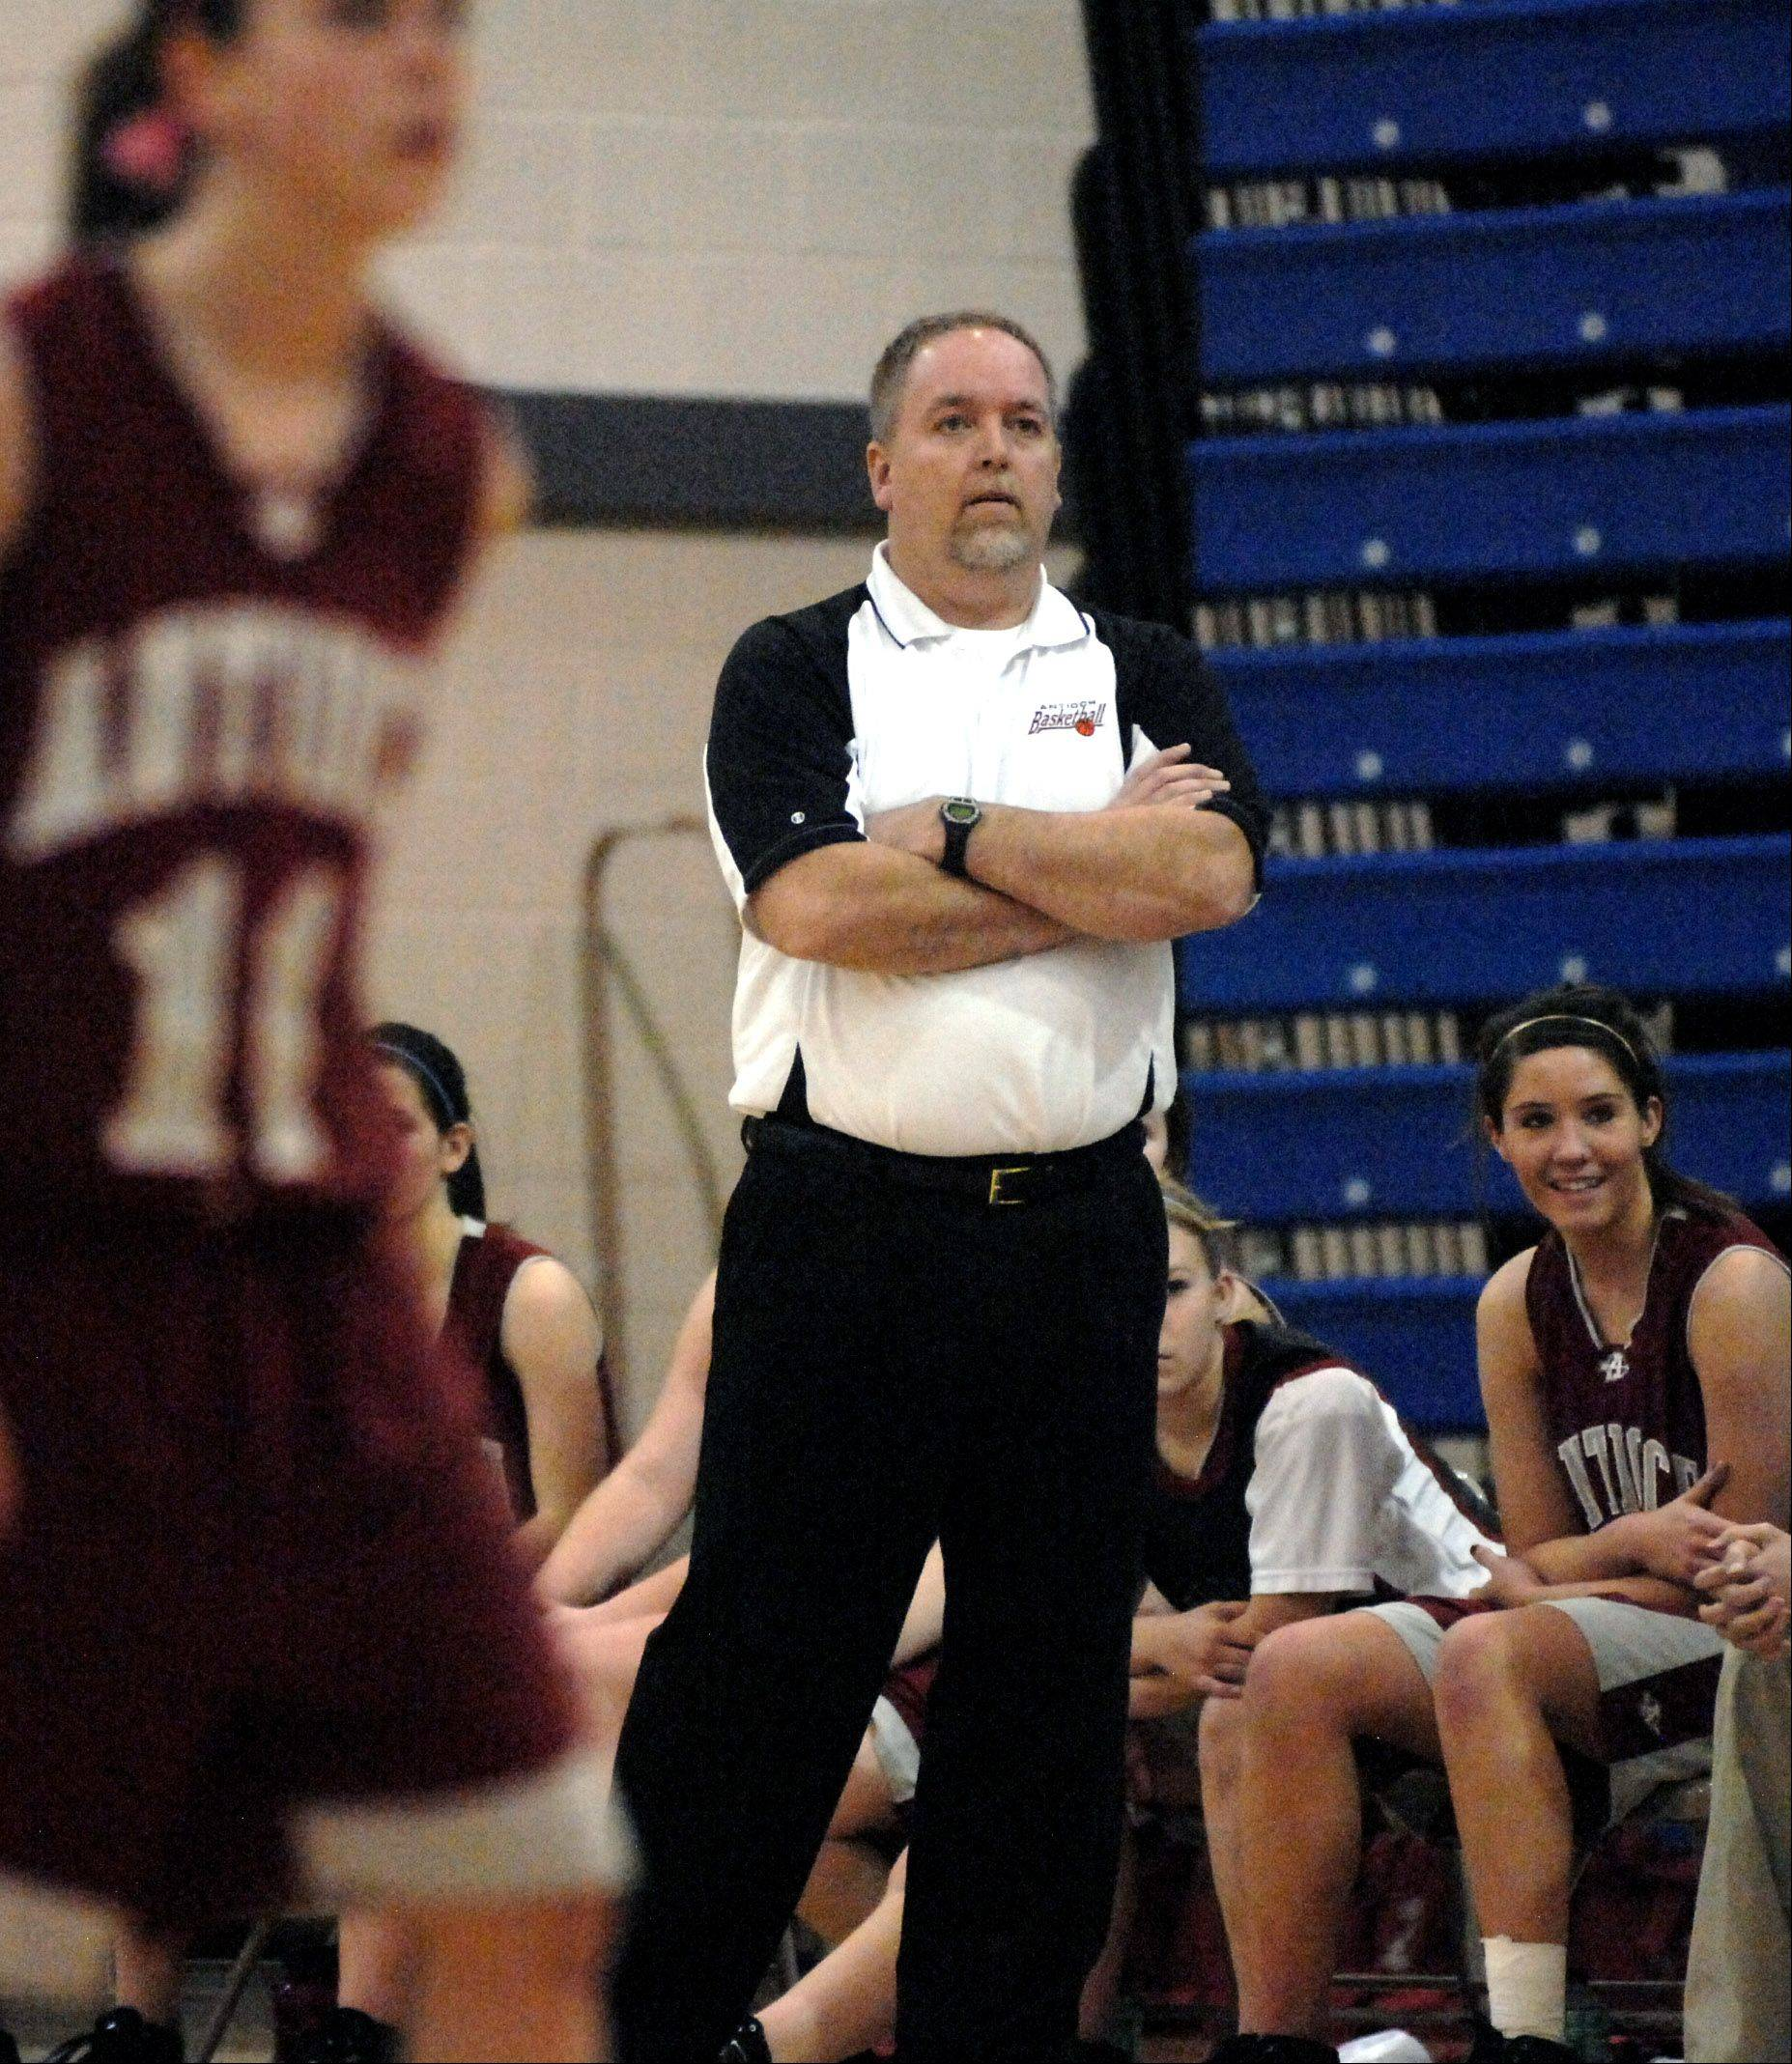 Antioch girls basketball coach Tim Borries will lead the West stars in the upcoming Lake County Senior Shootout.